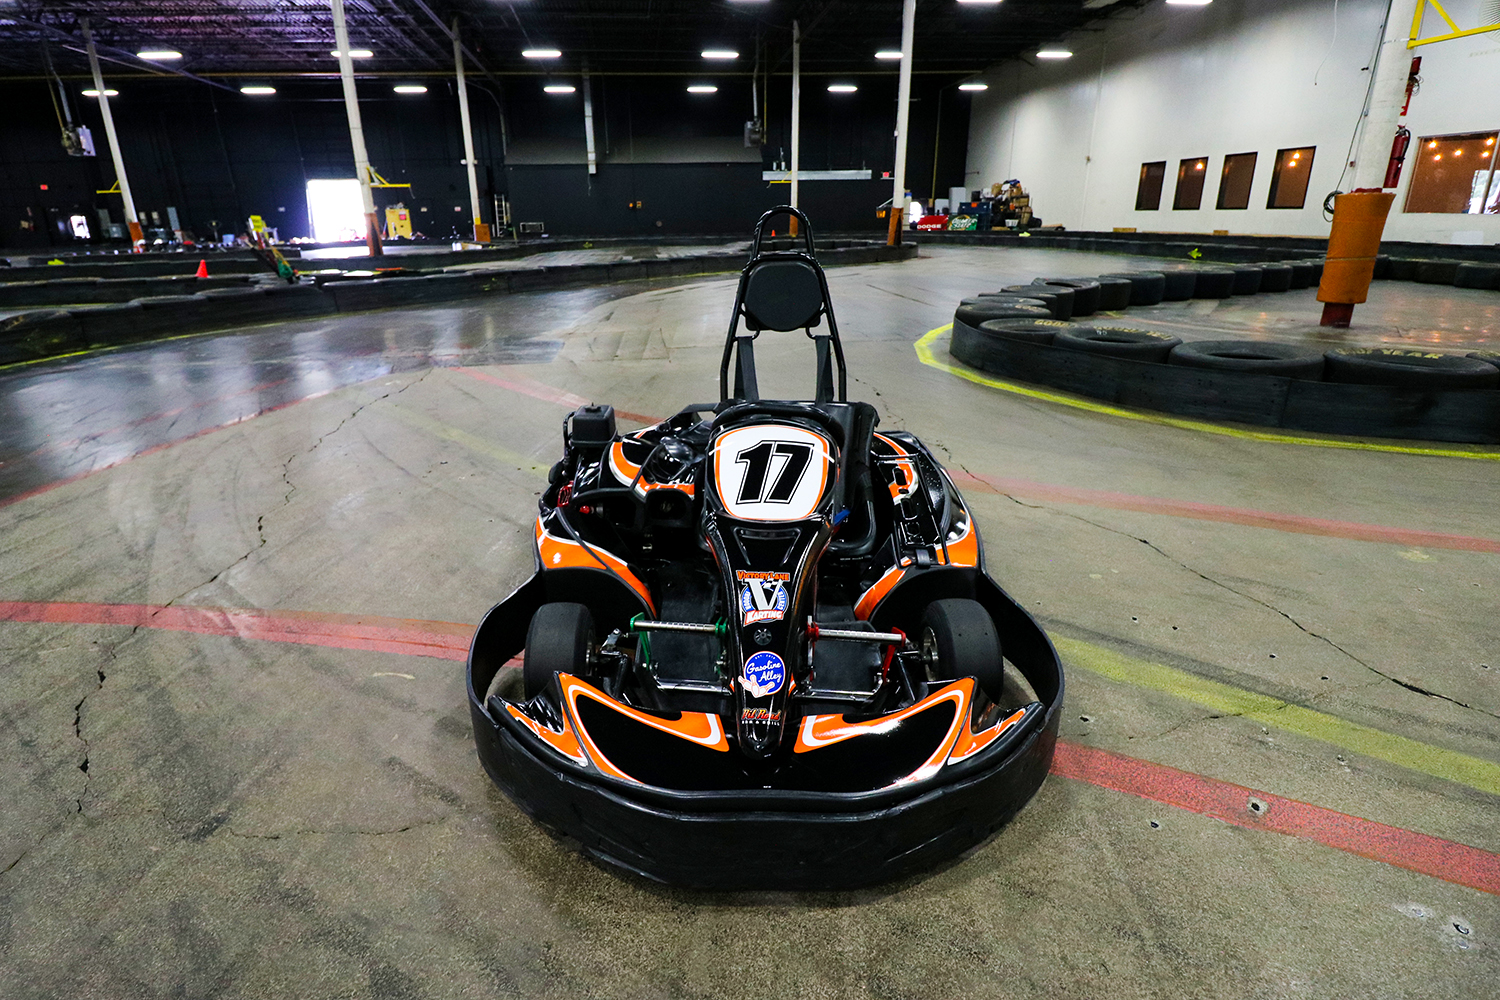 Ultimate VLK EXPERIENCE - Exclusive Facility Rental including both tracks, bowlinglanes, and Bar Area.Exclusive 2 Tracks or Super Track Rental with conferenceroom.Exclusive Single Track Rental with conference room